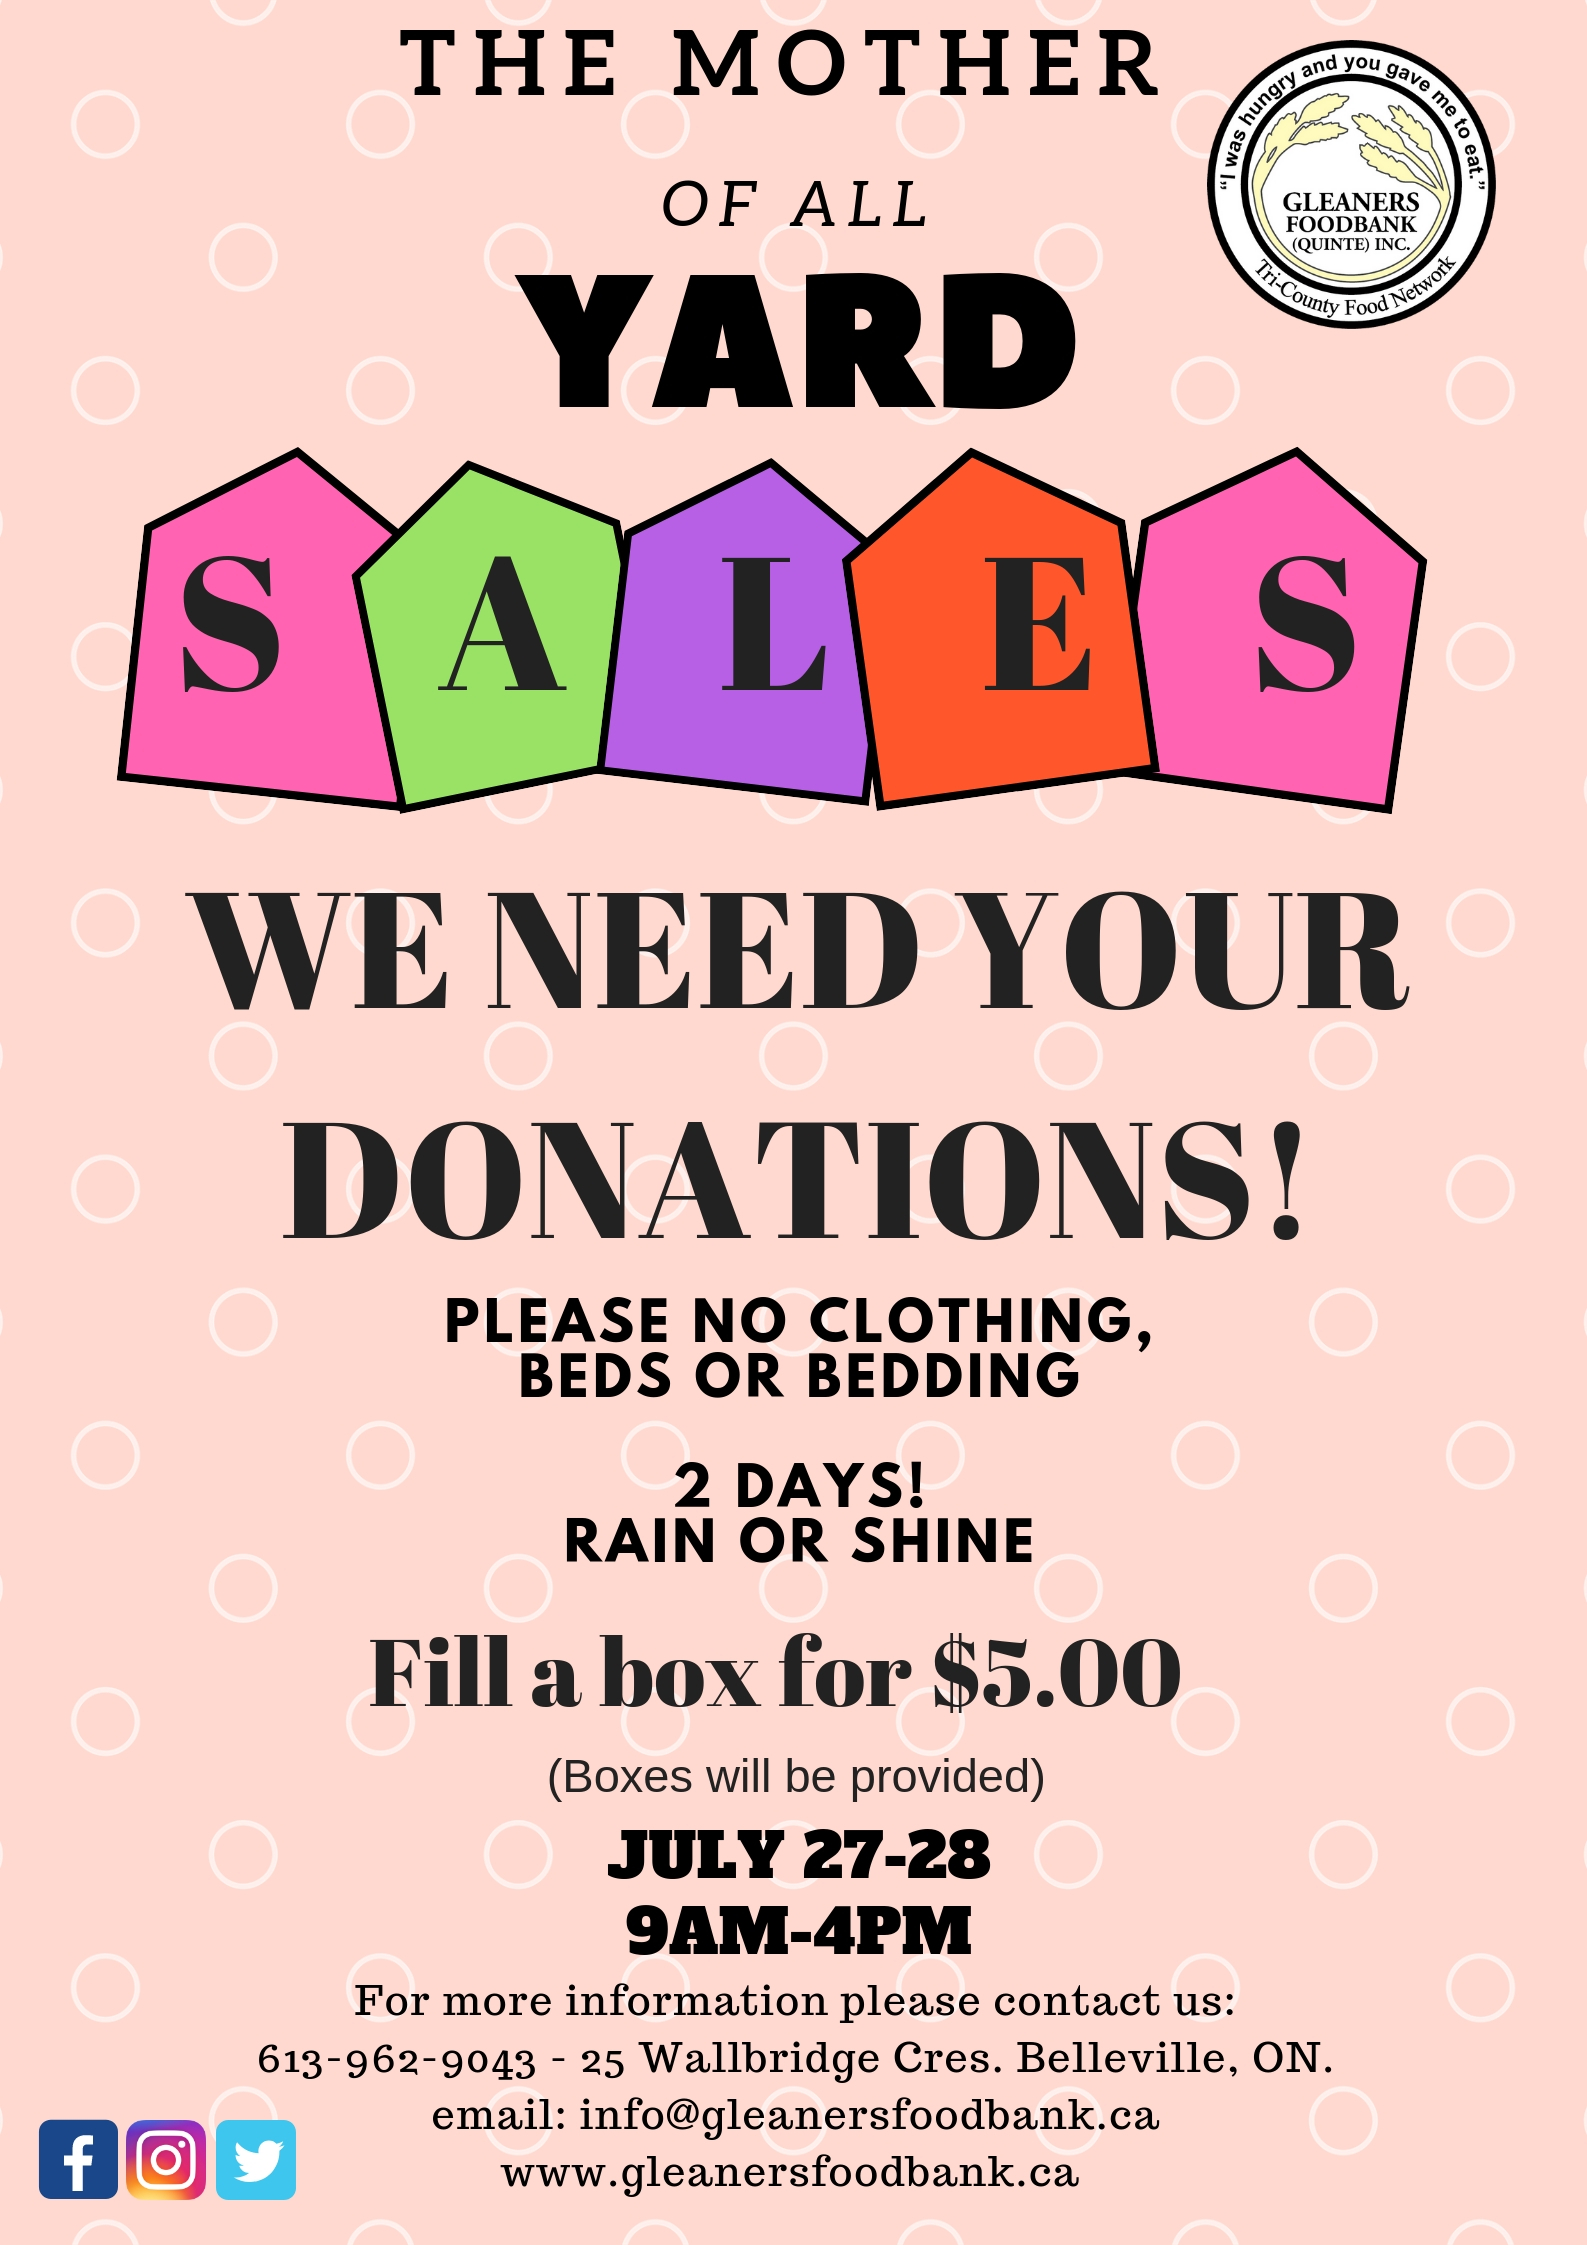 The Mother of All Yard Sales - Bay of Quinte Tourism